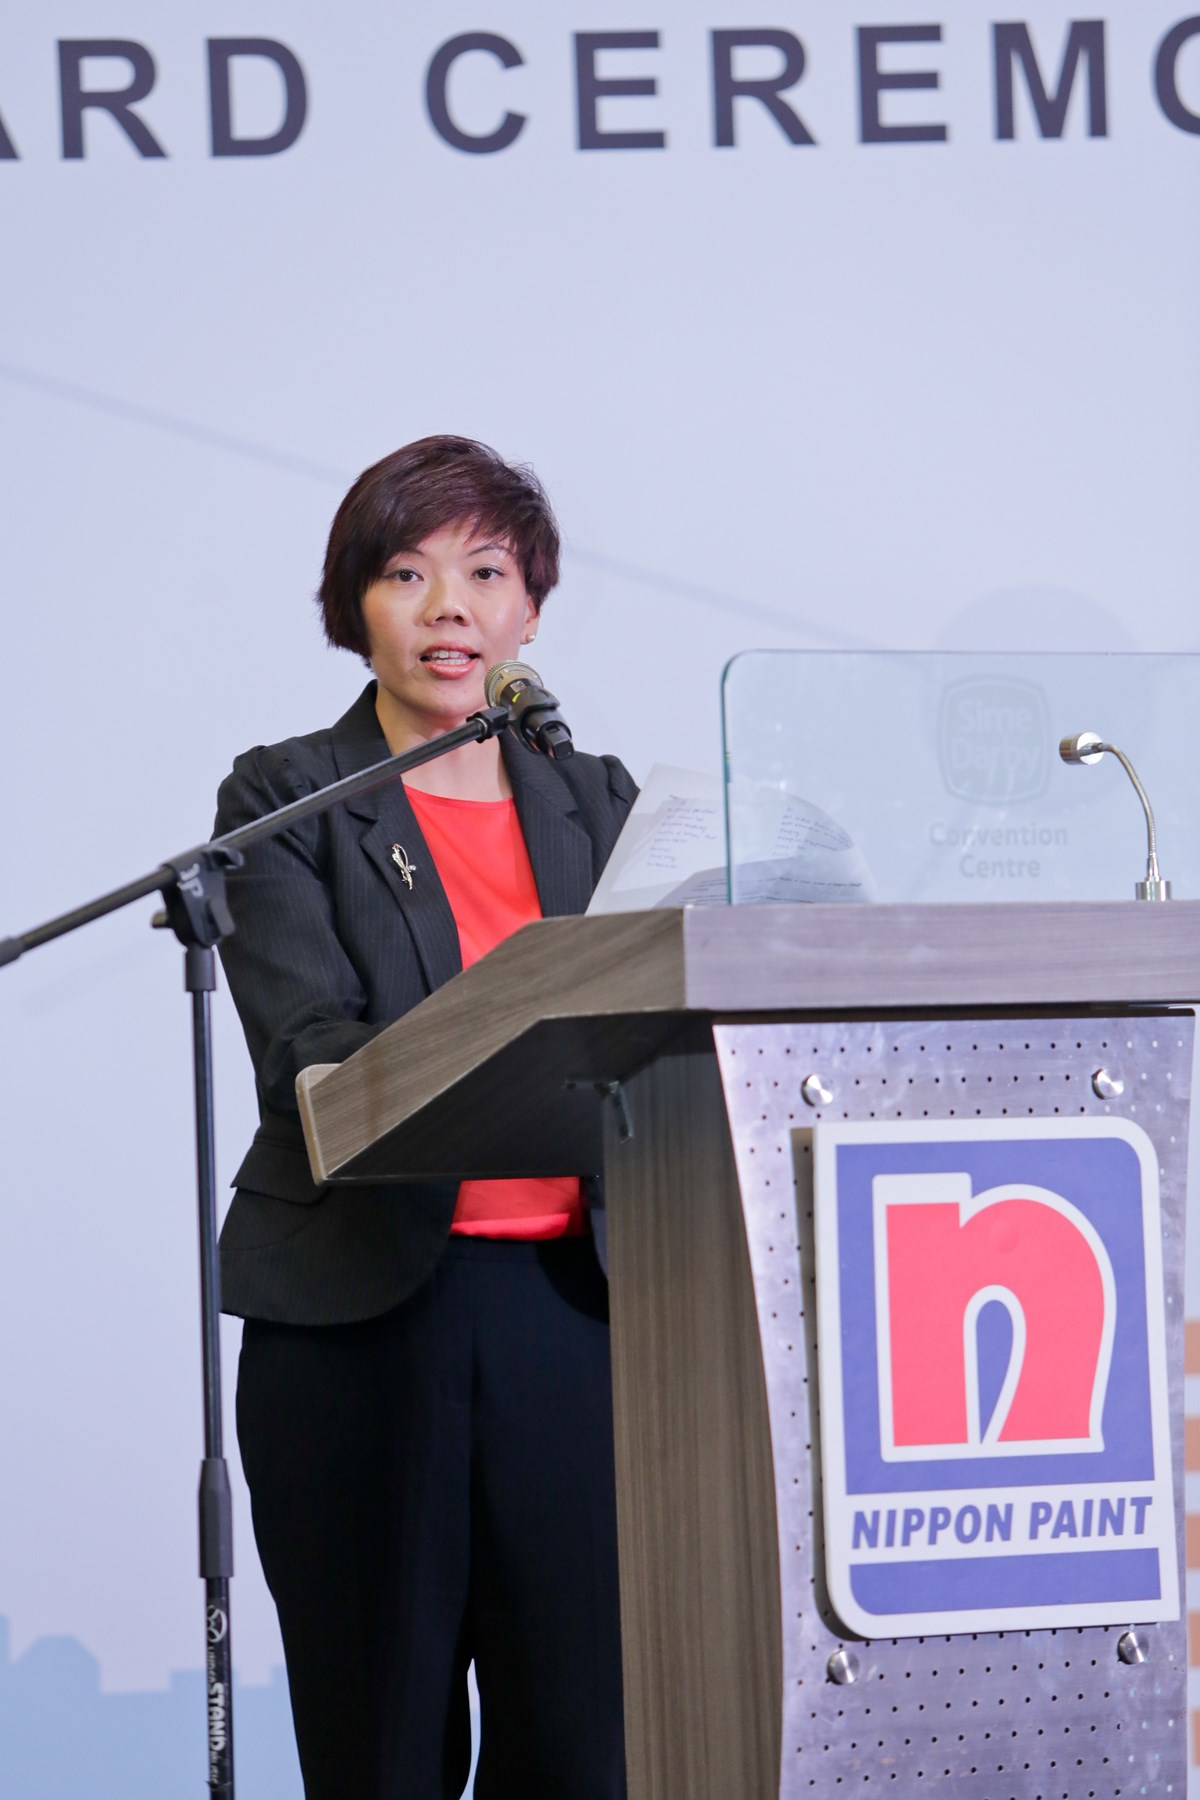 Gladys Goh, Group General Manager of Nippon Paint Malaysia Group